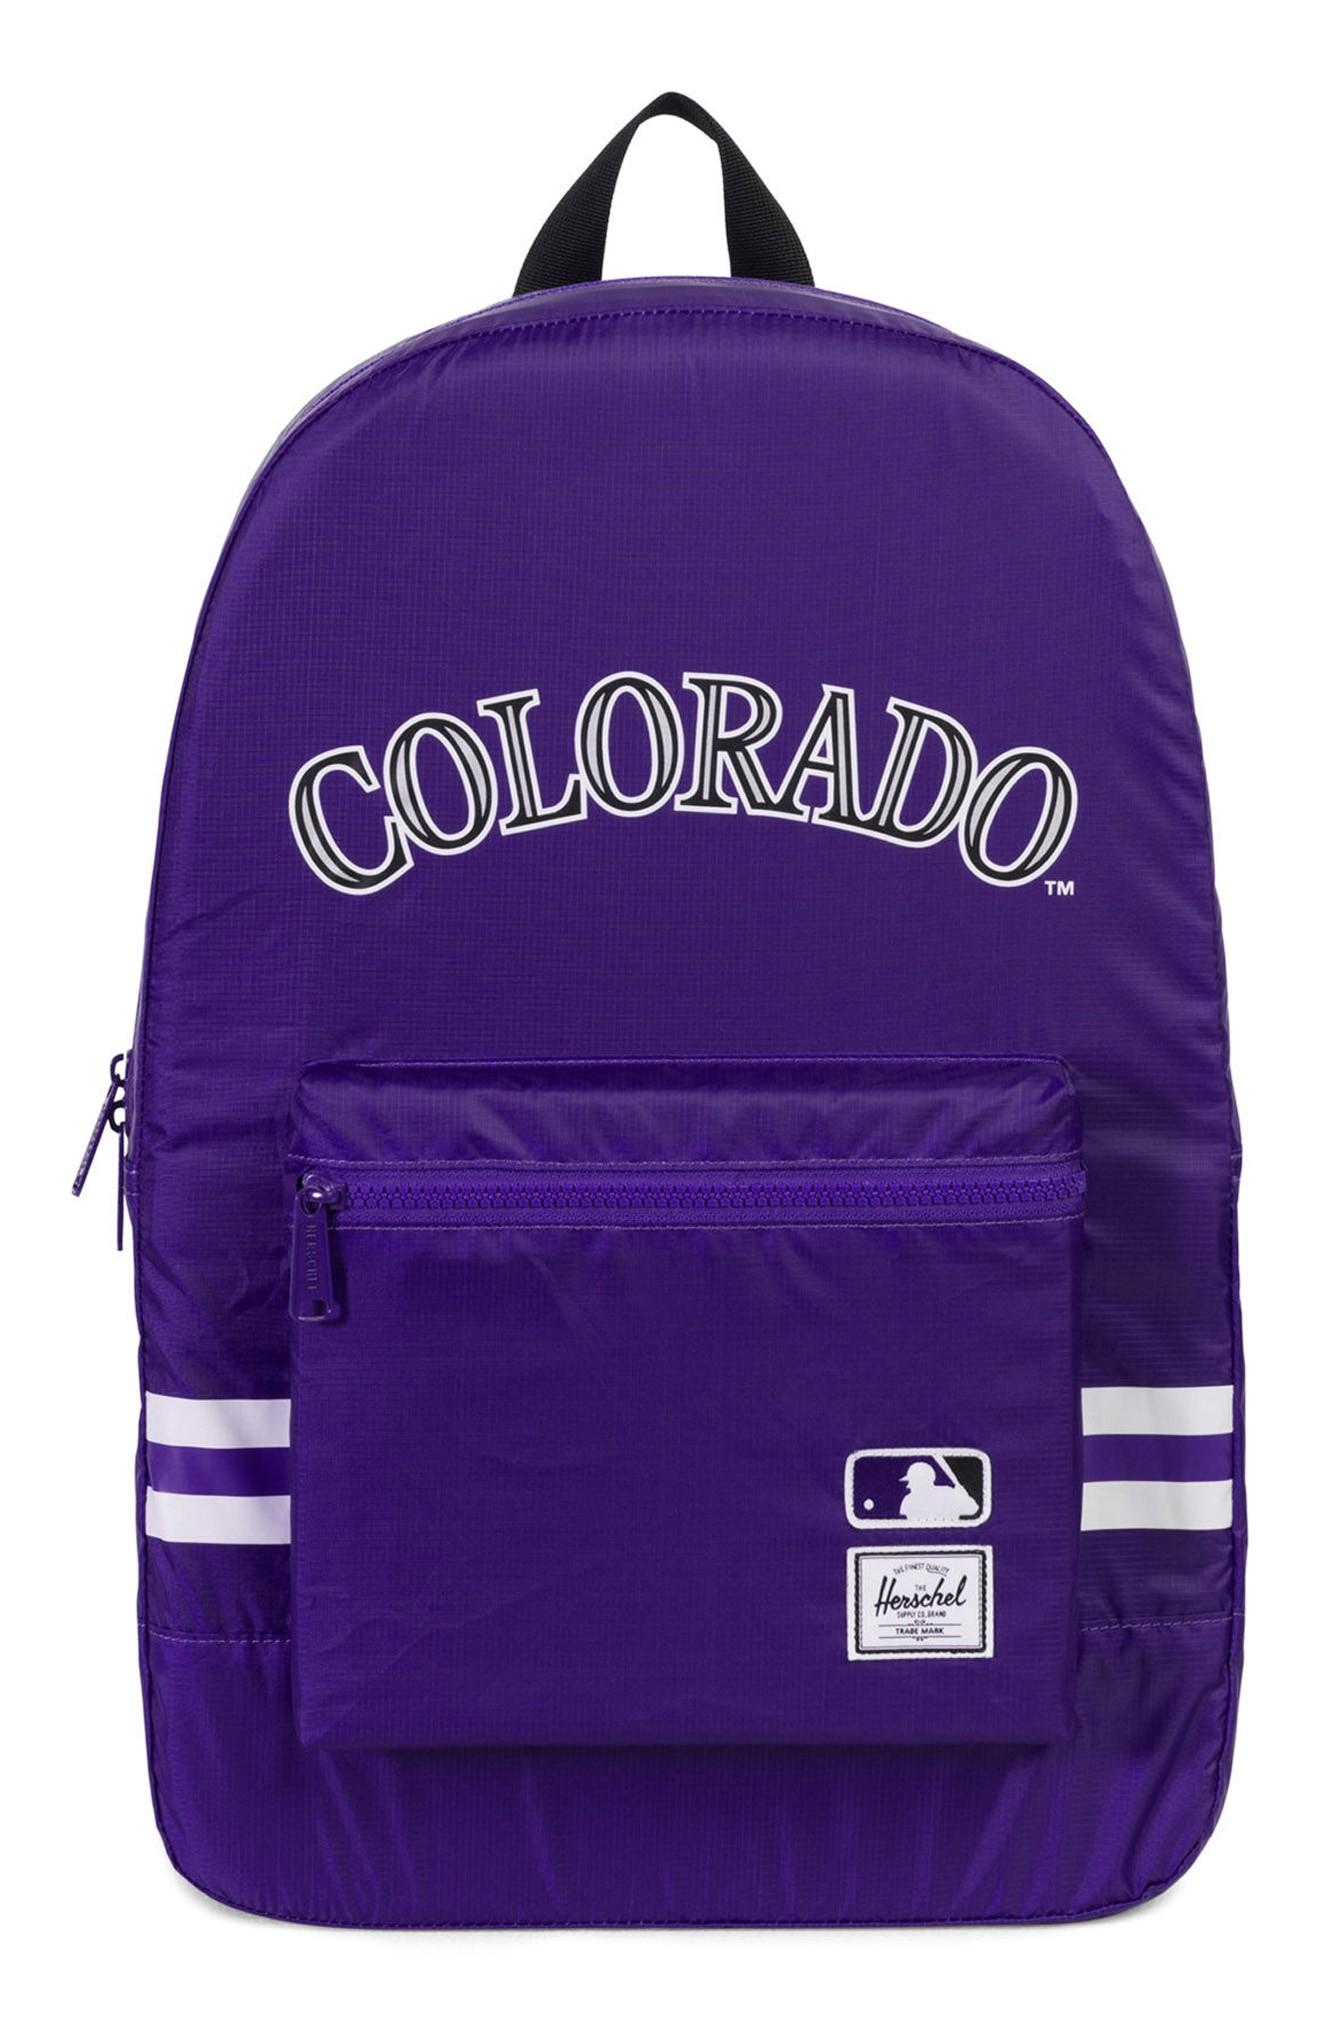 b0c0721750 An ultra-light ripstop backpack printed with your favorite National League  team logos packs down into its own interior pocket when not in use.